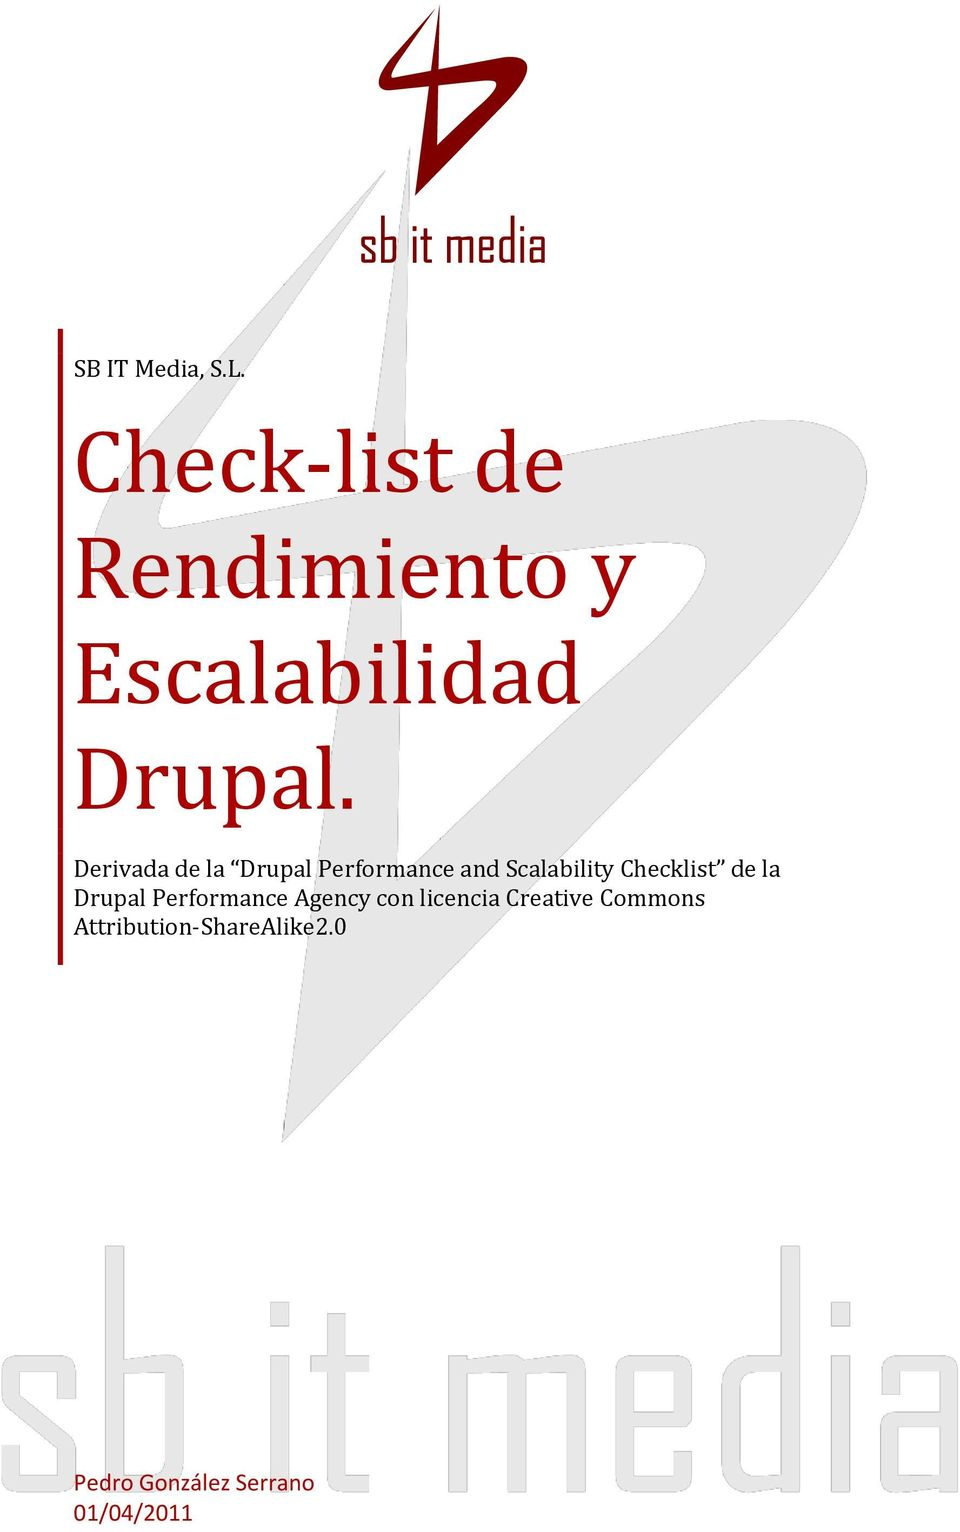 Derivada de la Drupal Performance and Scalability Checklist de